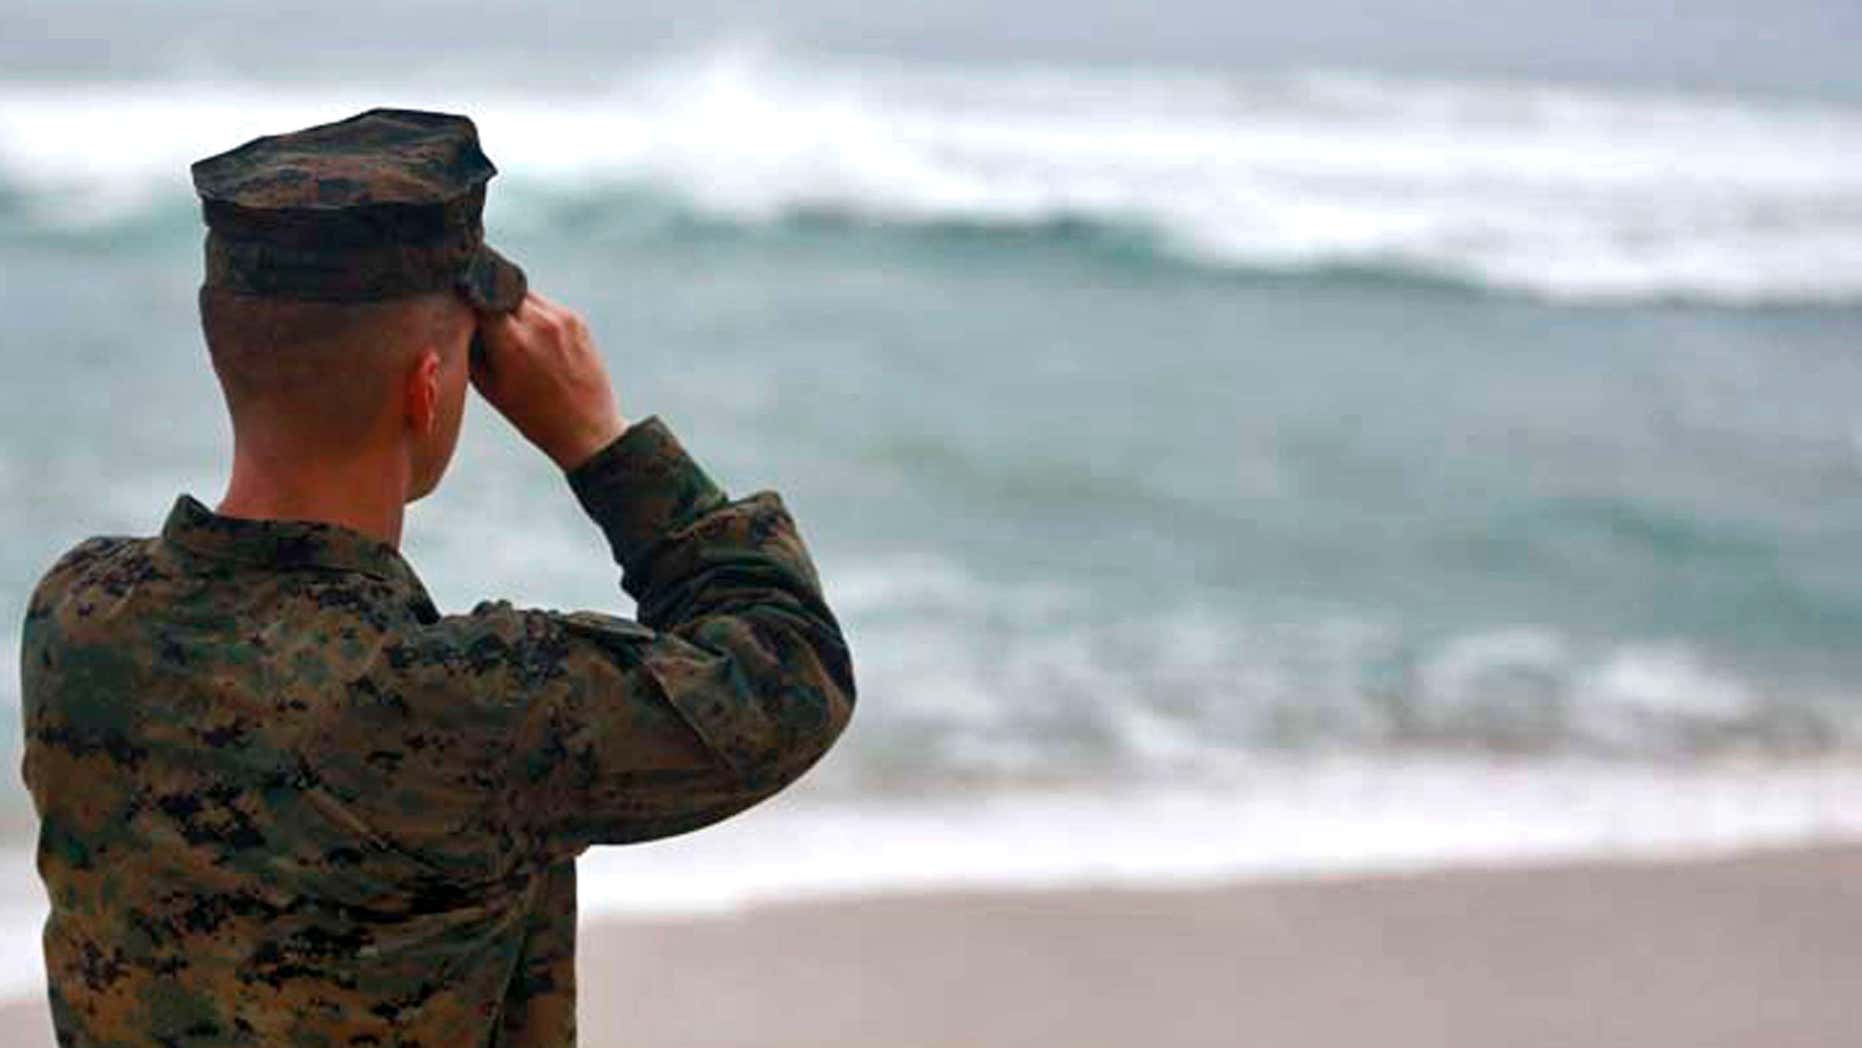 This Friday, Jan. 15, 2016 photo provided by the U.S. Marine Corps shows a Marine Officer attached to Marine Heavy Helicopter Squadron 463 uses binoculars to search for debris of a helicopter mishap in Haliewa Beach Park, Hawaii.